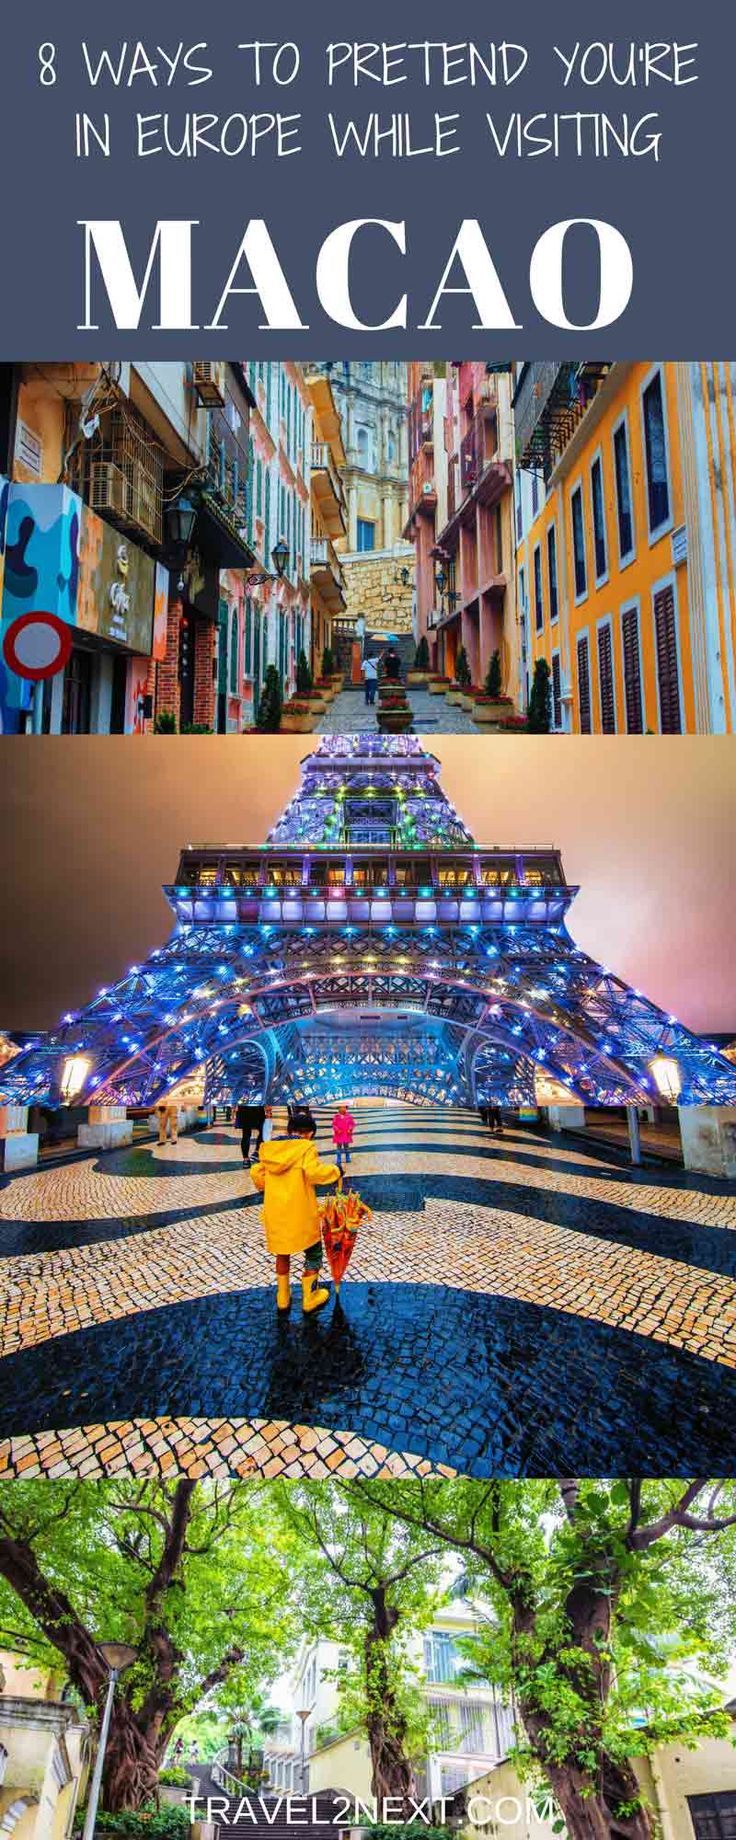 8 ways to pretend you're in Europe while in Macao. Walking through Macao's European-style squares and passing the beautiful churches, you can almost believe you're exploring a city in Europe.